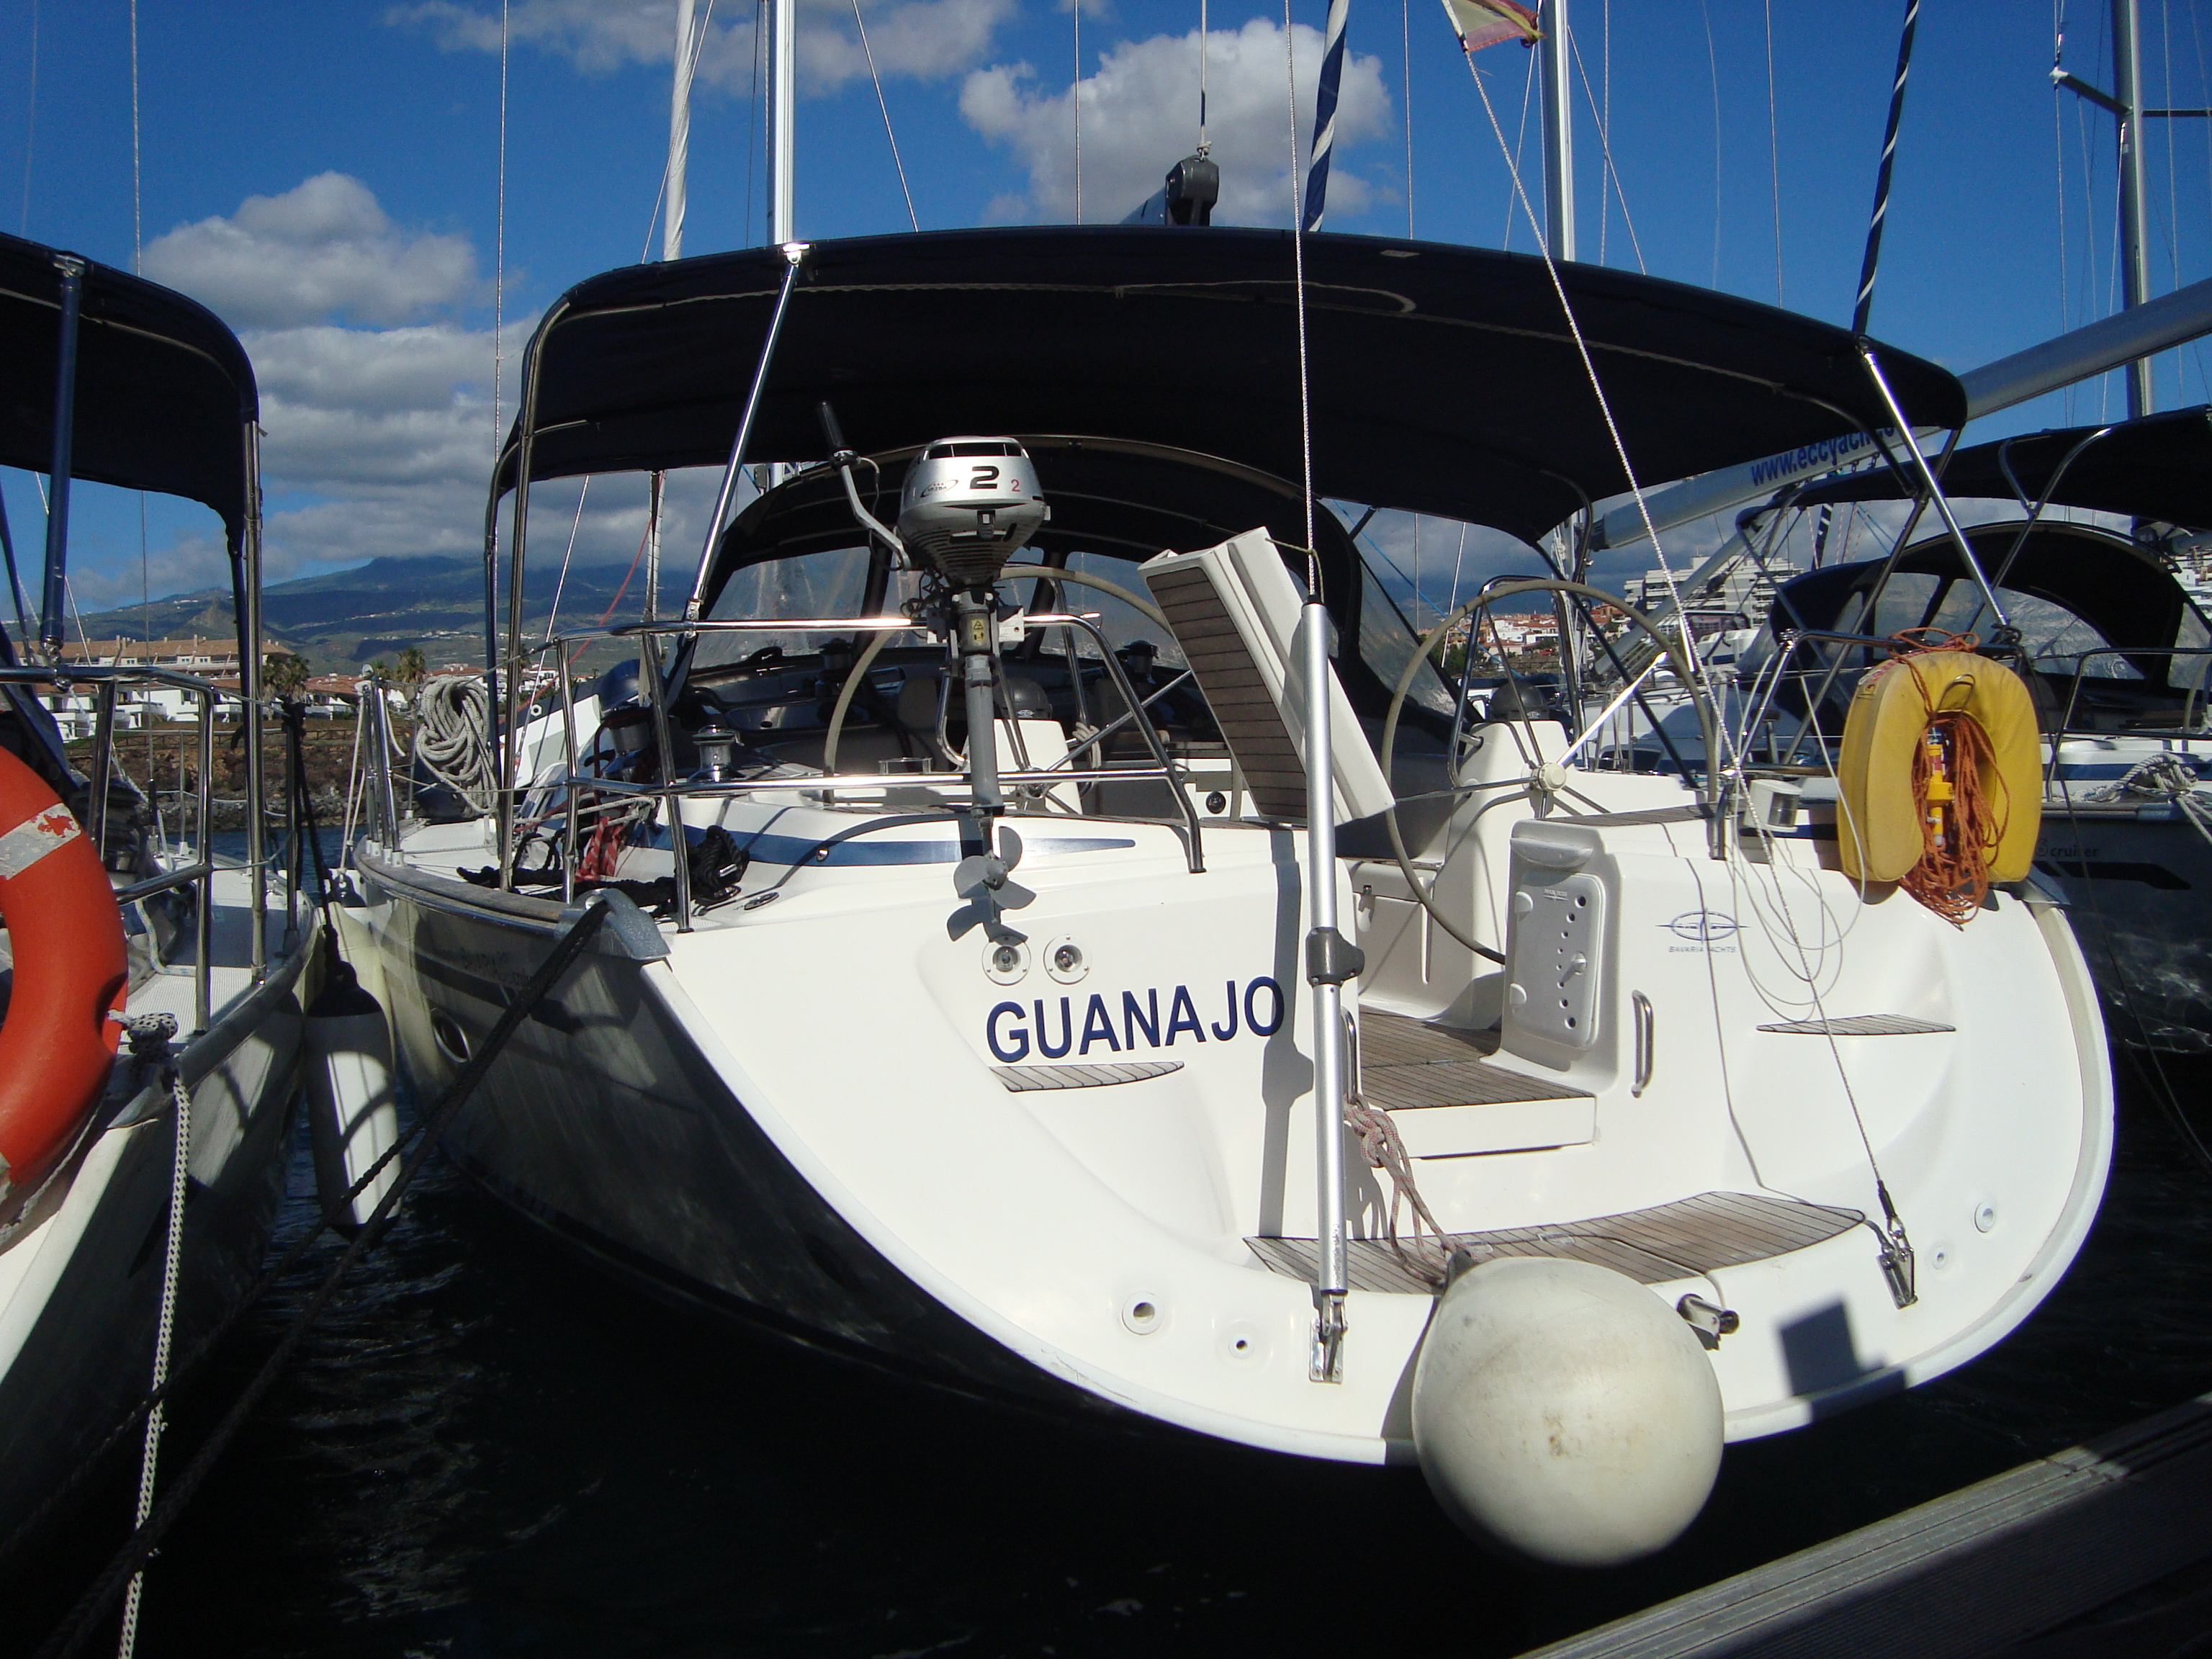 Yachtcharter Bavaria 50 Cruiser - Spanien, Canary Islands, Radazul, Tenerife